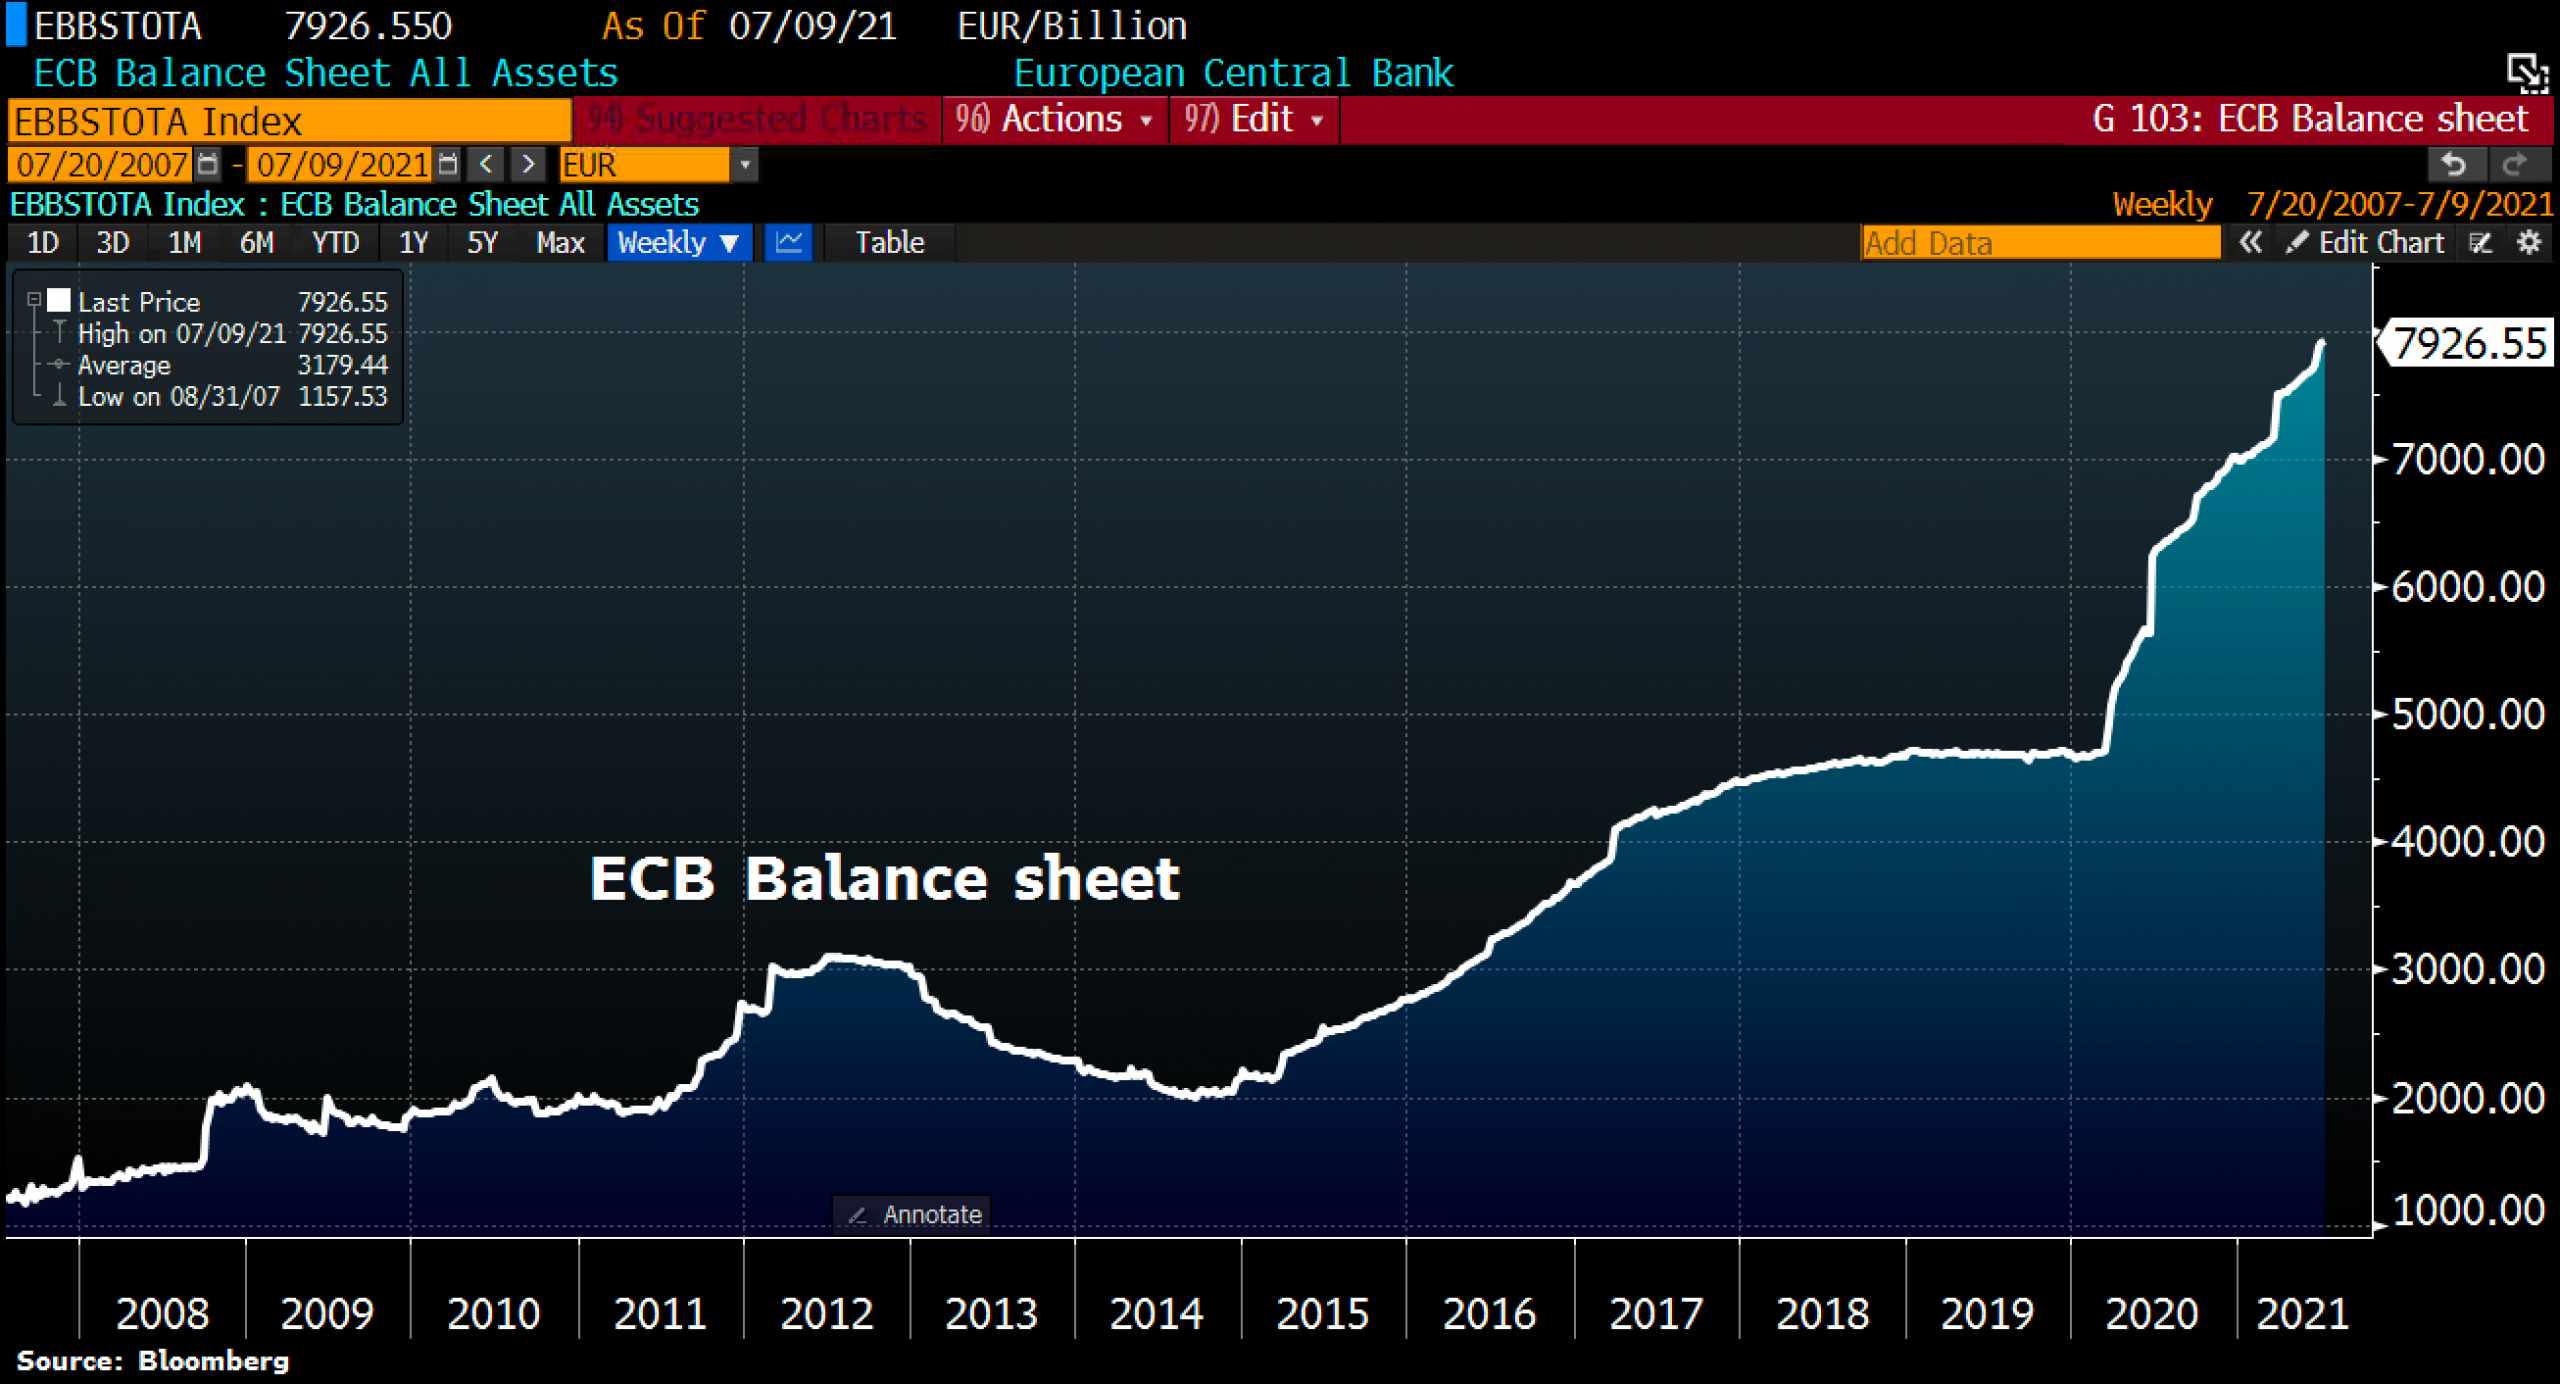 ECB Balance sheet as of July 13th, 2021. Source Holger Zschaepitz